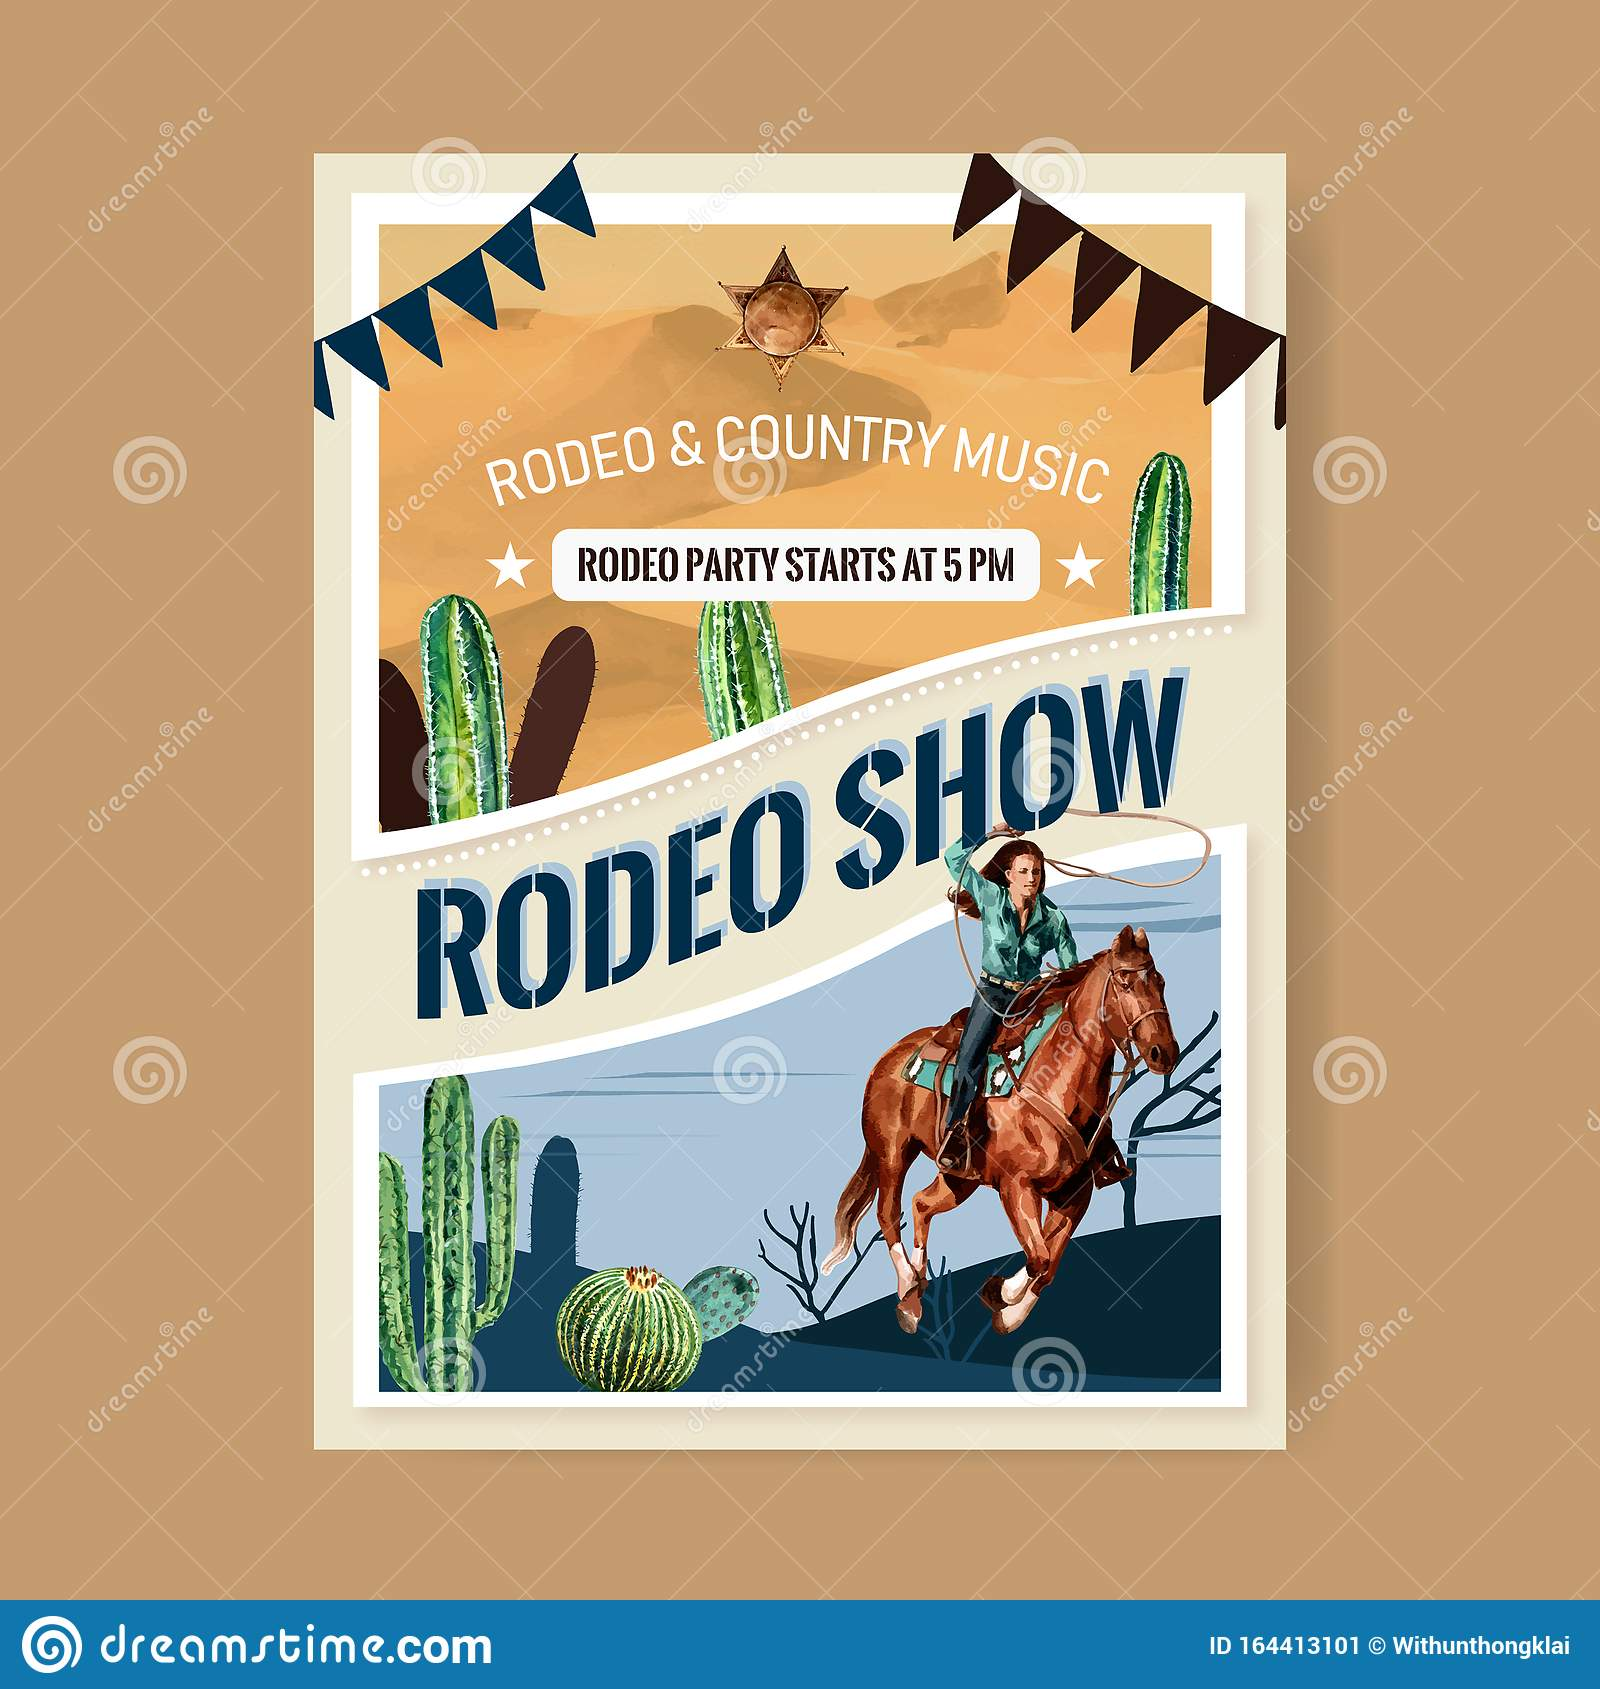 Cowboy Poster Design With Man Horse Cactus Watercolor Illustration Stock Vector Illustration Of Hand Western 164413101